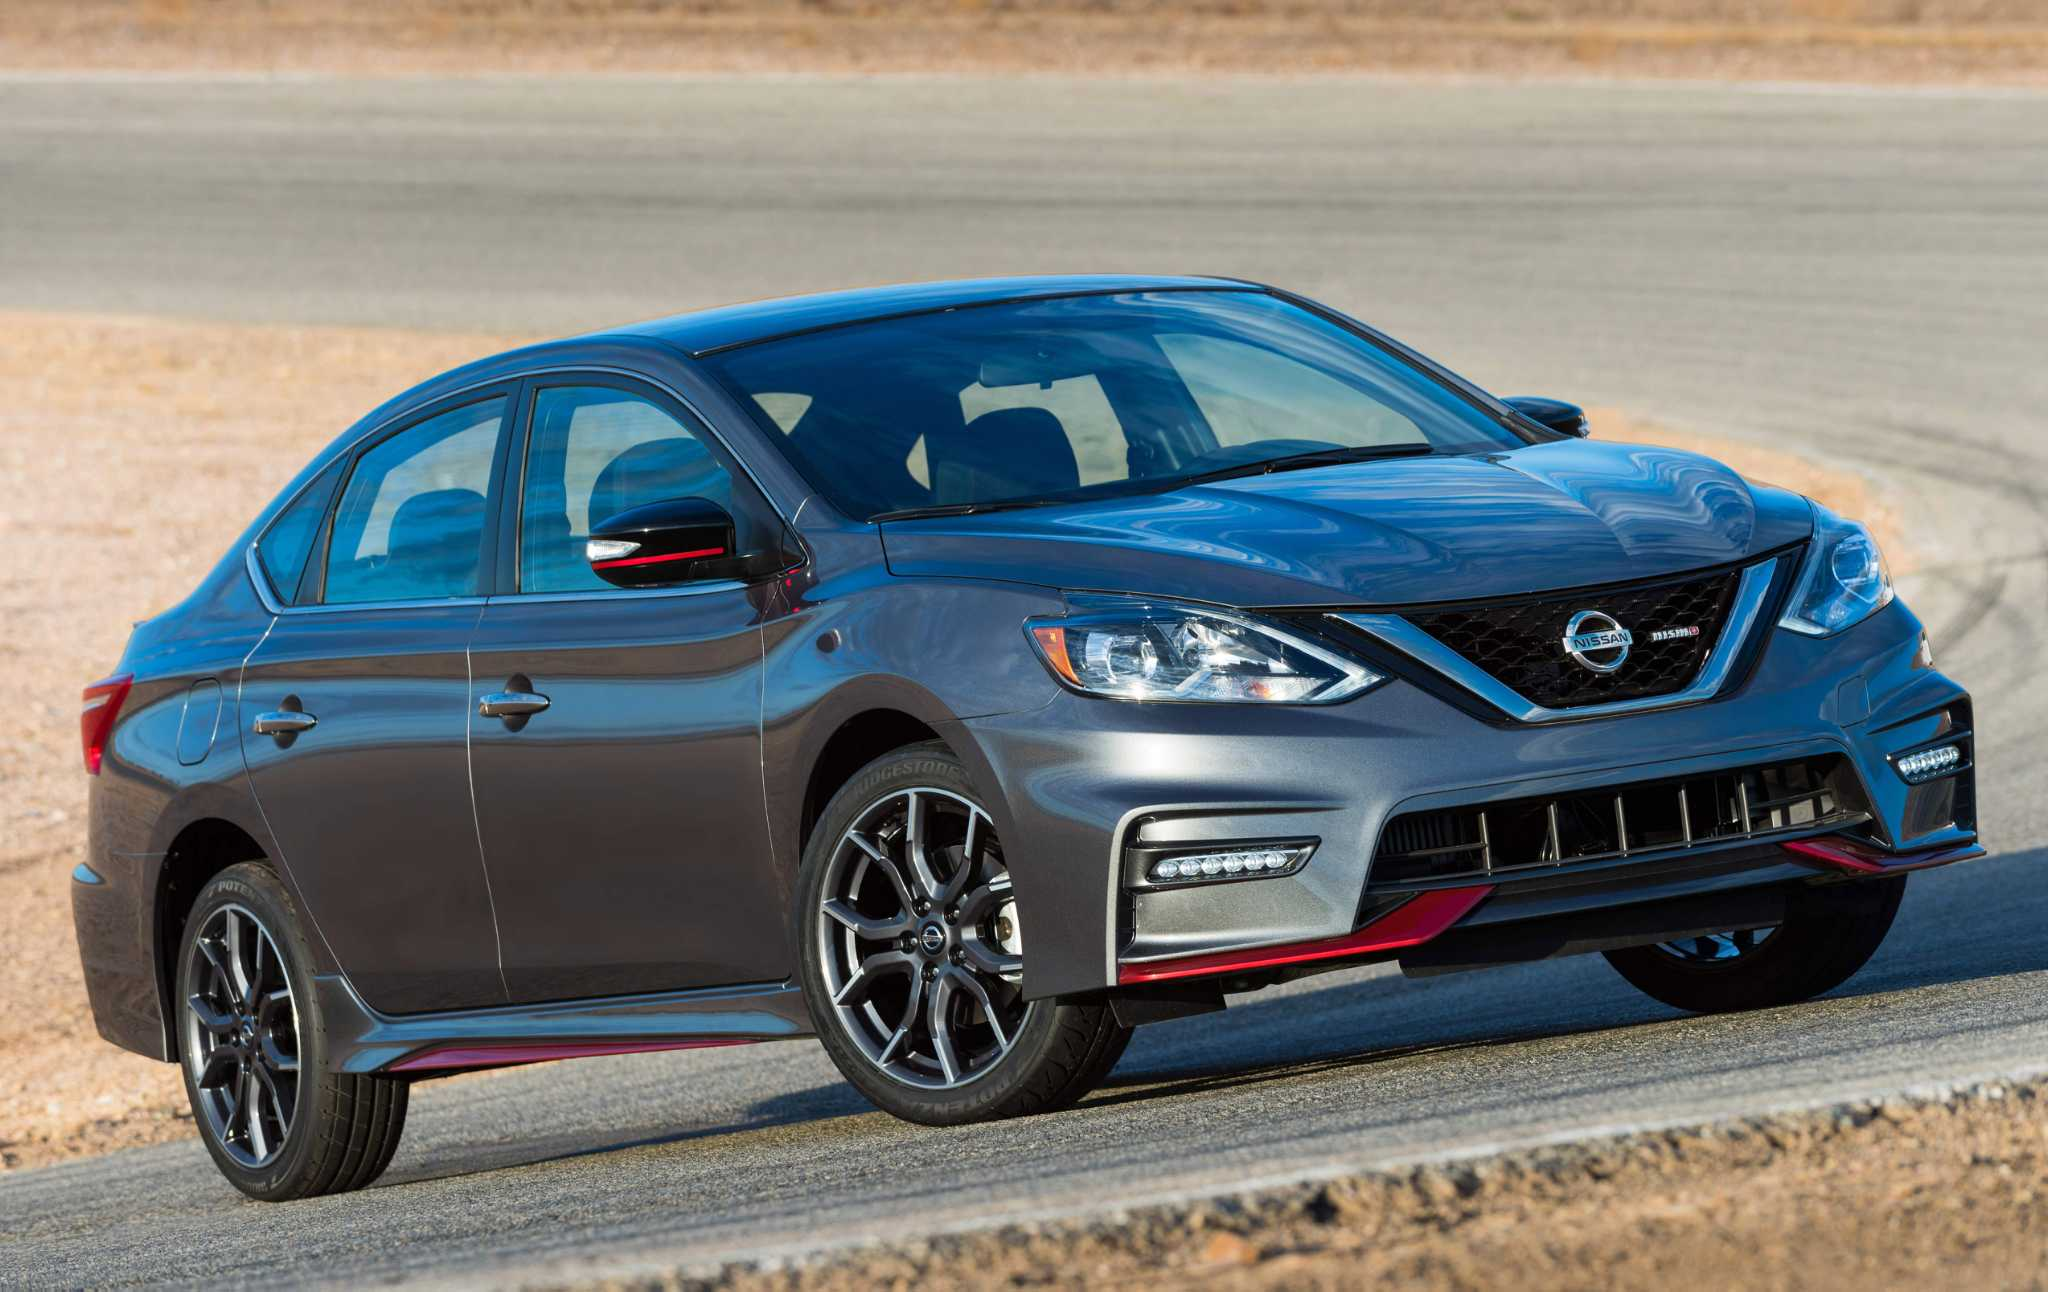 Nissan's sport sedan Sentra NISMO returns for 2018 with extra features